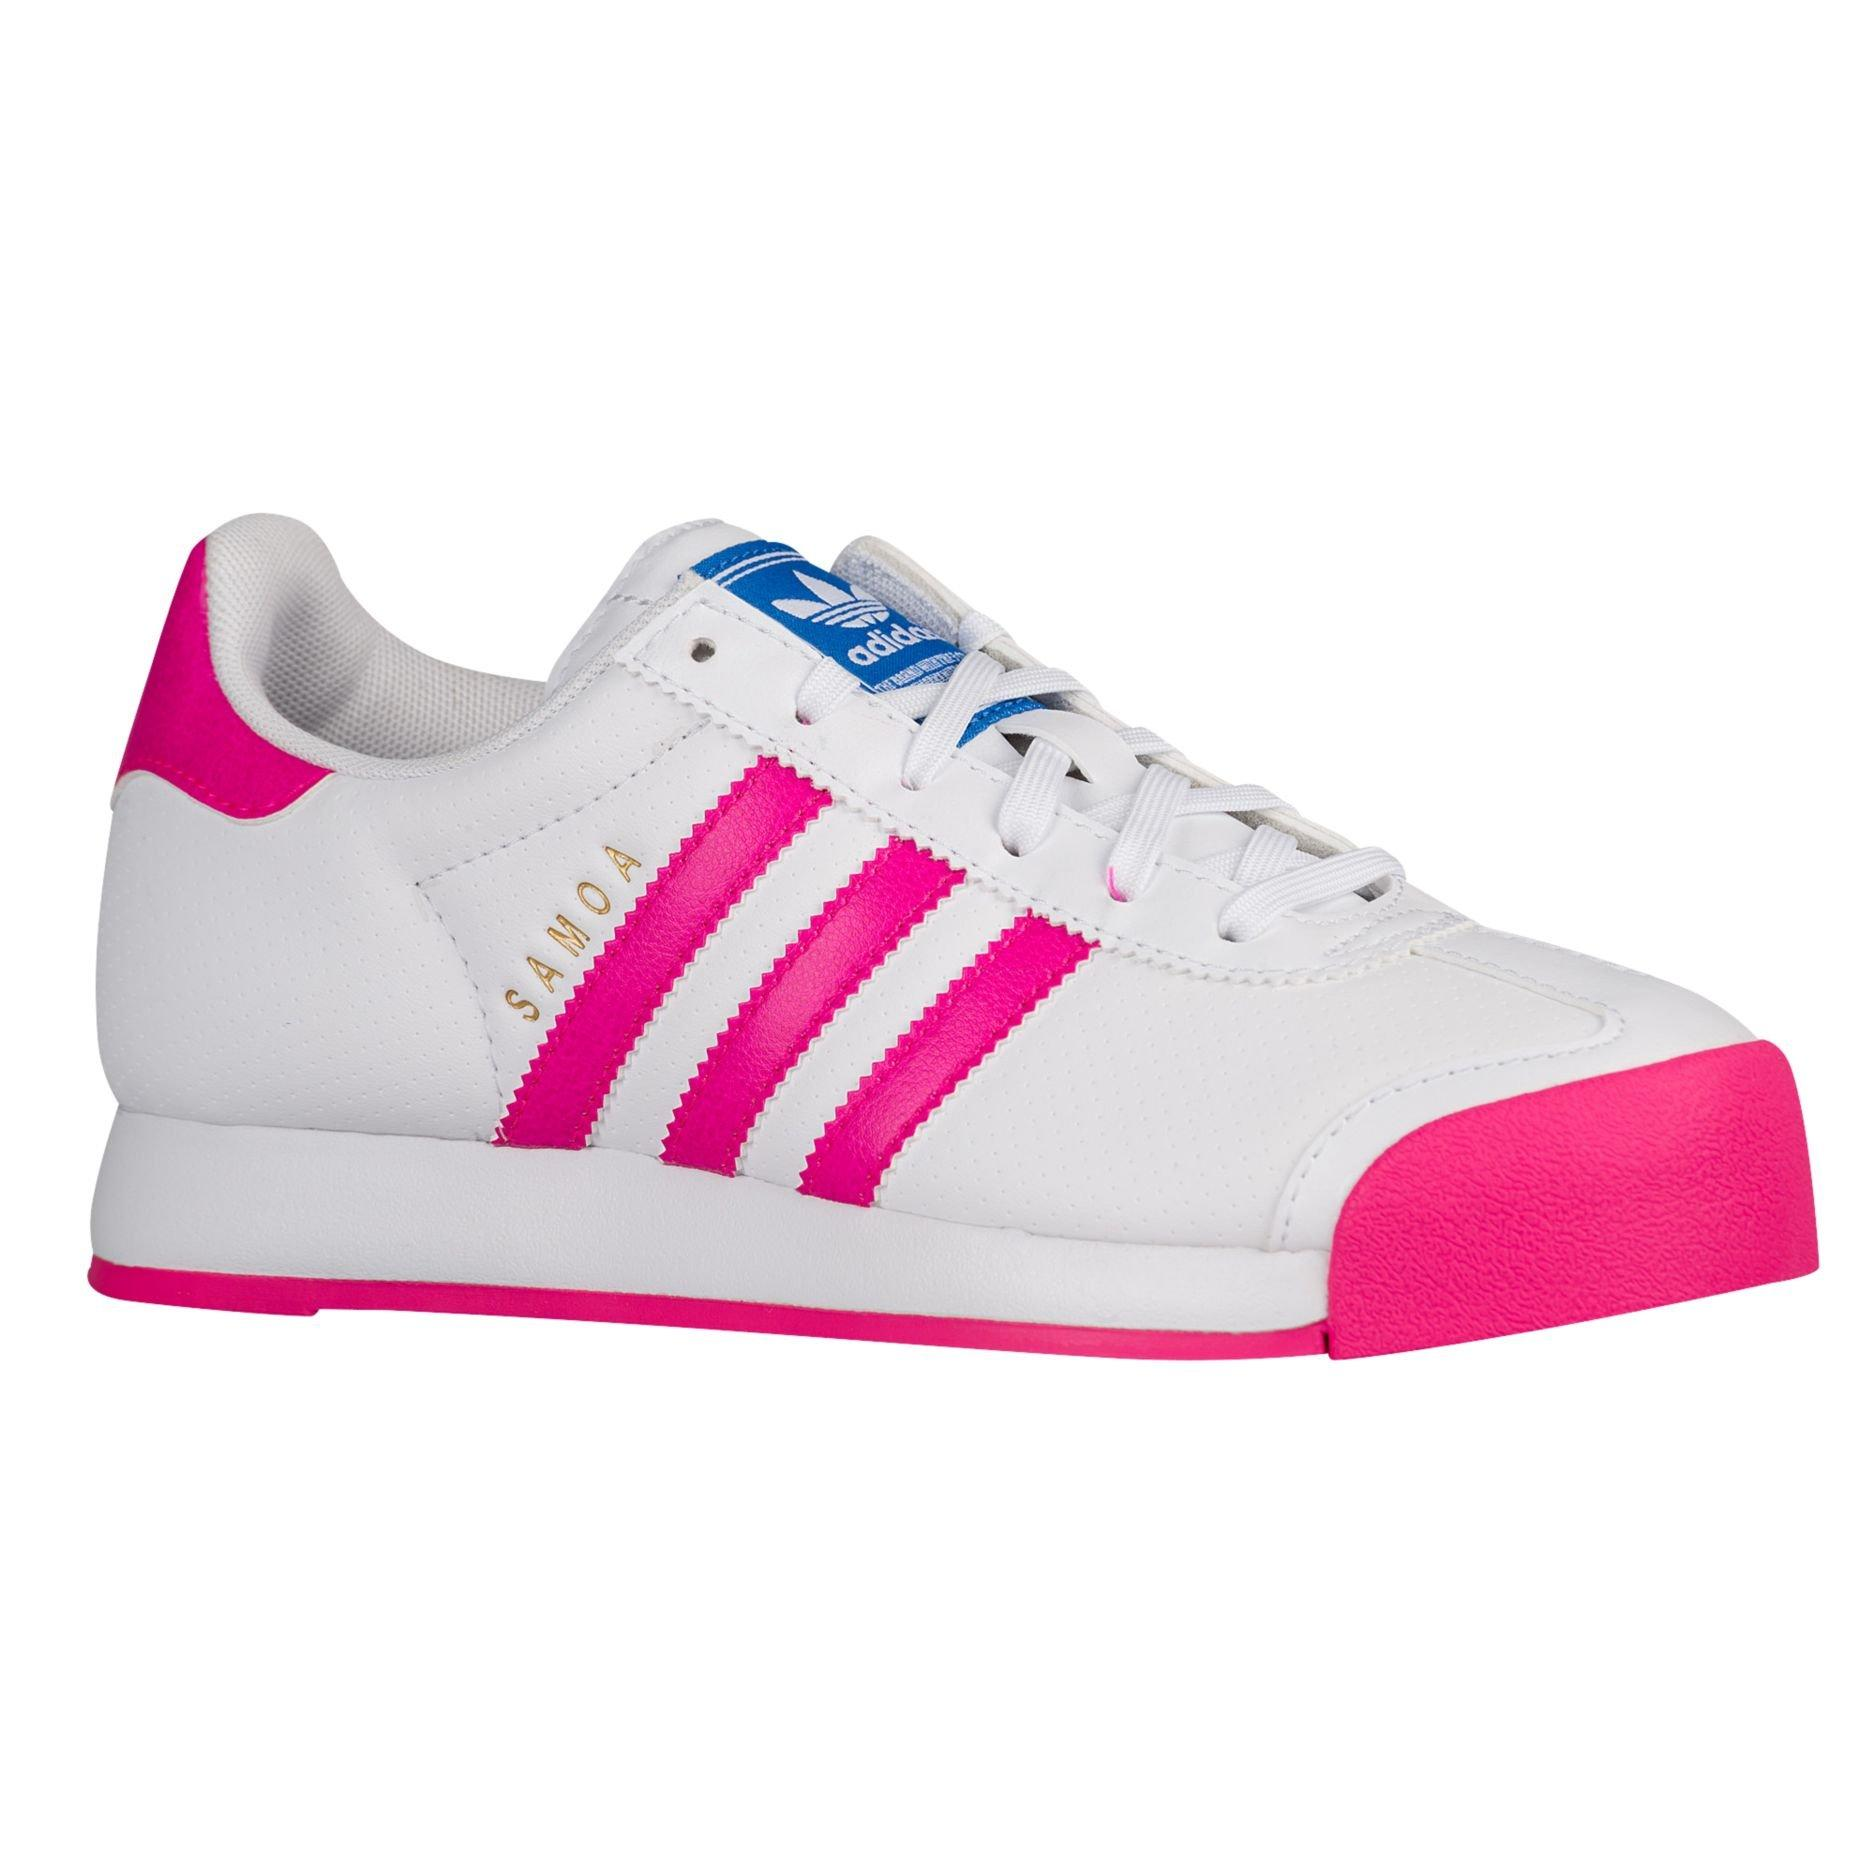 adidas Samoa Gum Sole Men\u0027s Casual Shoe. Standard Price$70.00 Sale  Price$59.95. 5 out of 5 stars. Read reviews.